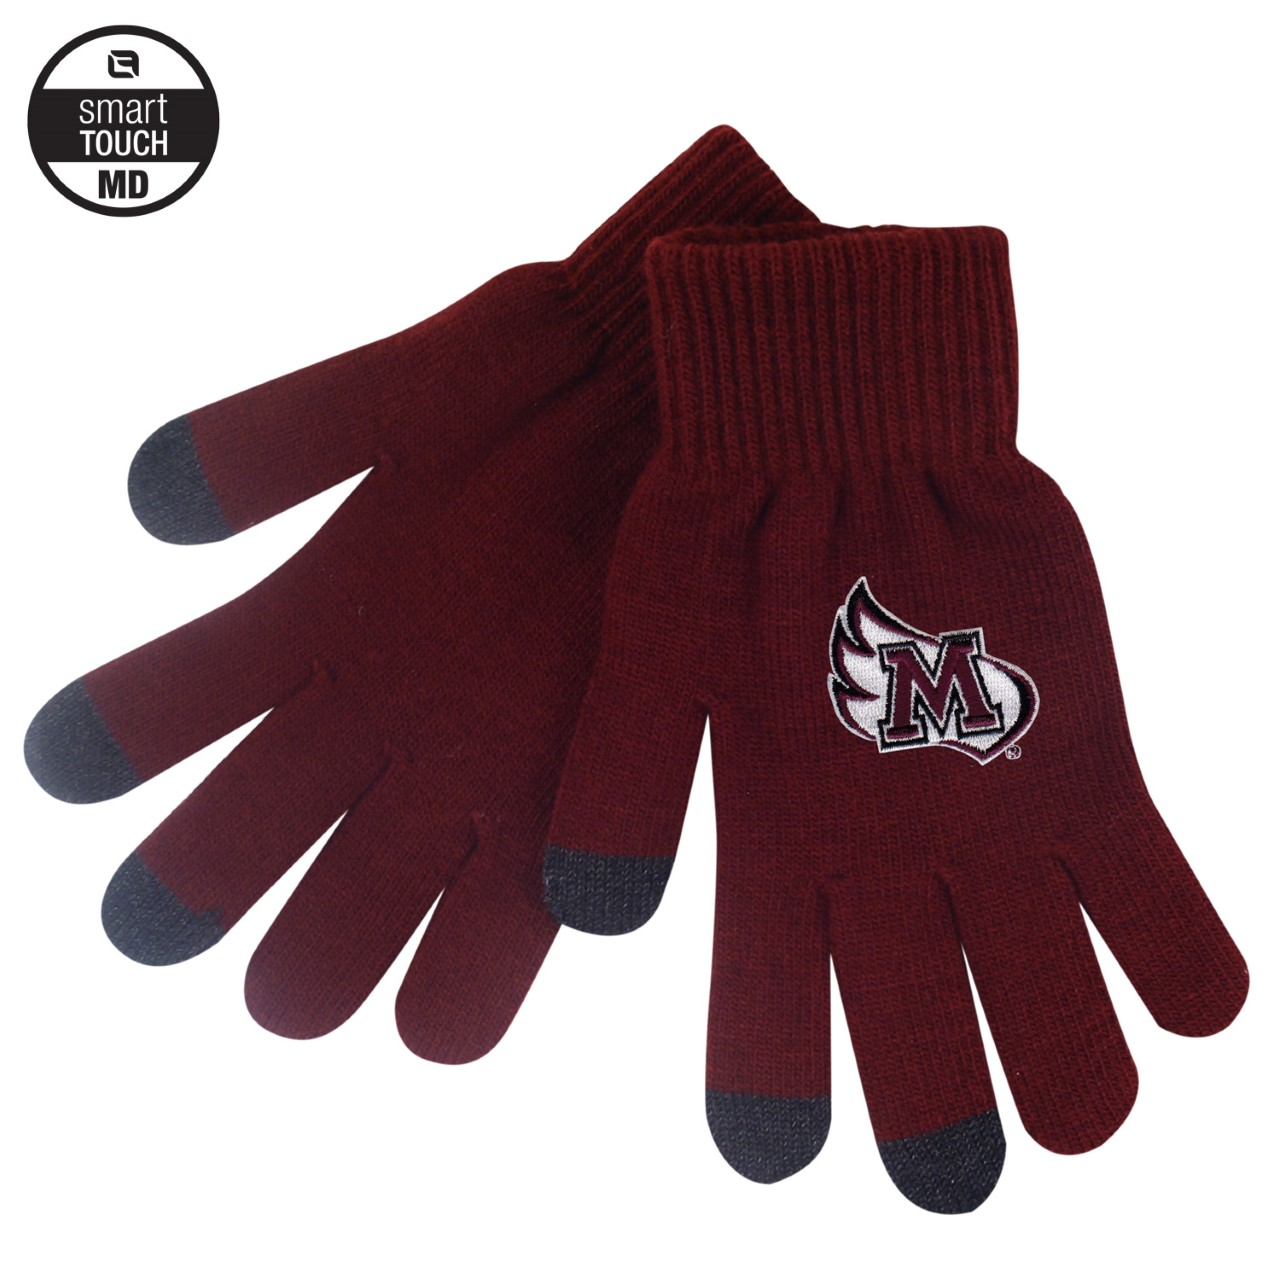 Image for the Smart Touch Knit Gloves, Burgundy product